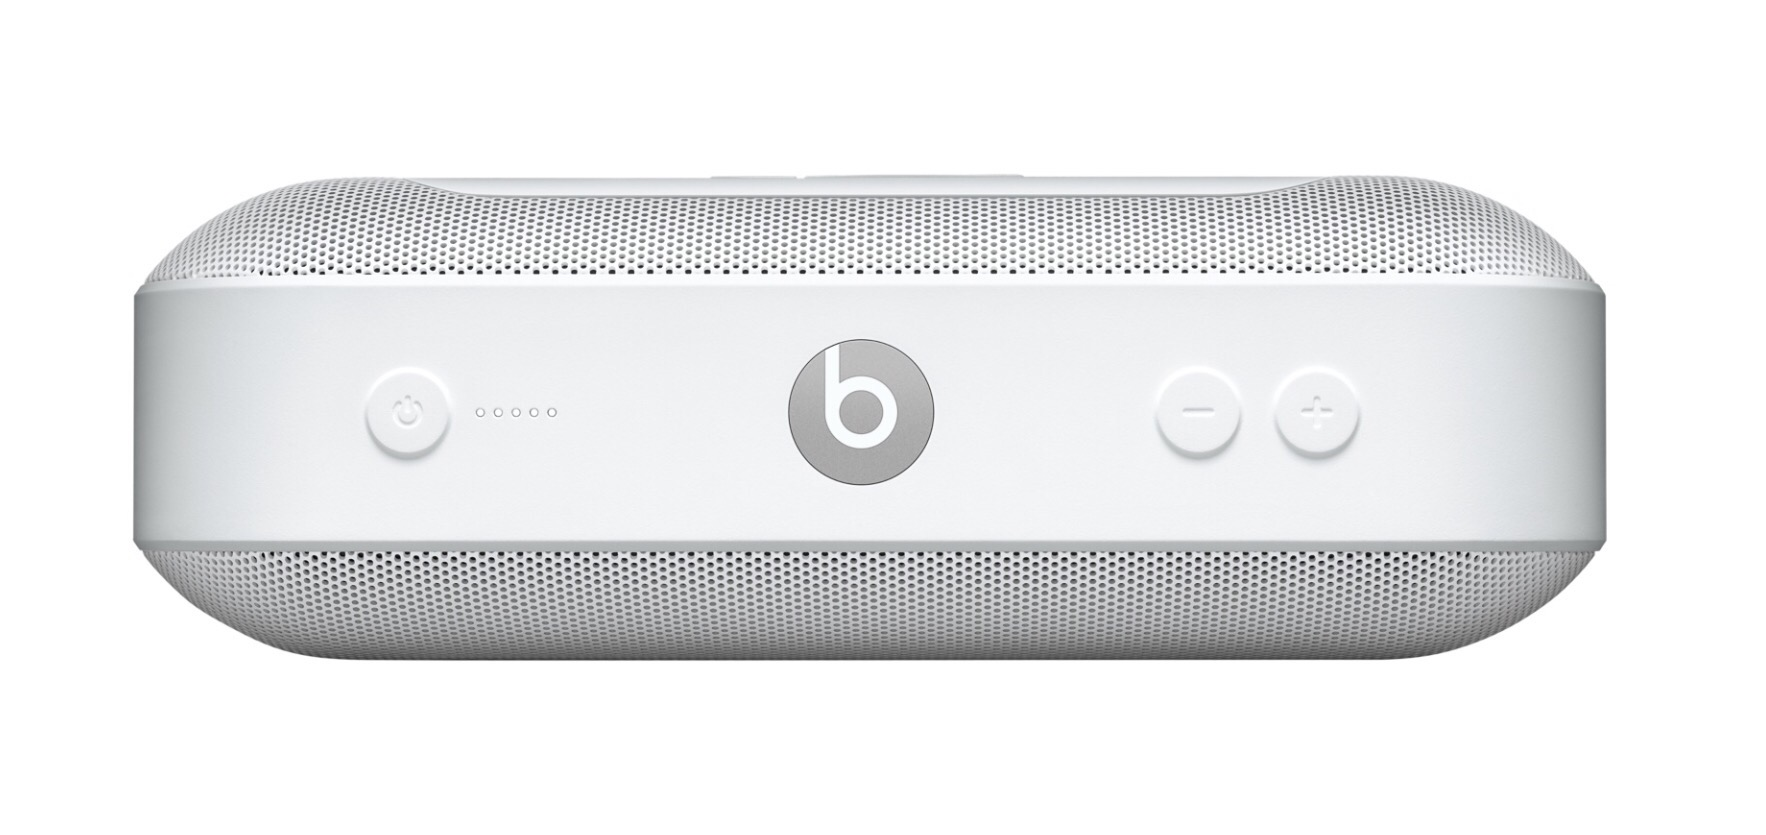 Grab Apple's Beats Pill+ speaker for $100 off from Best Buy